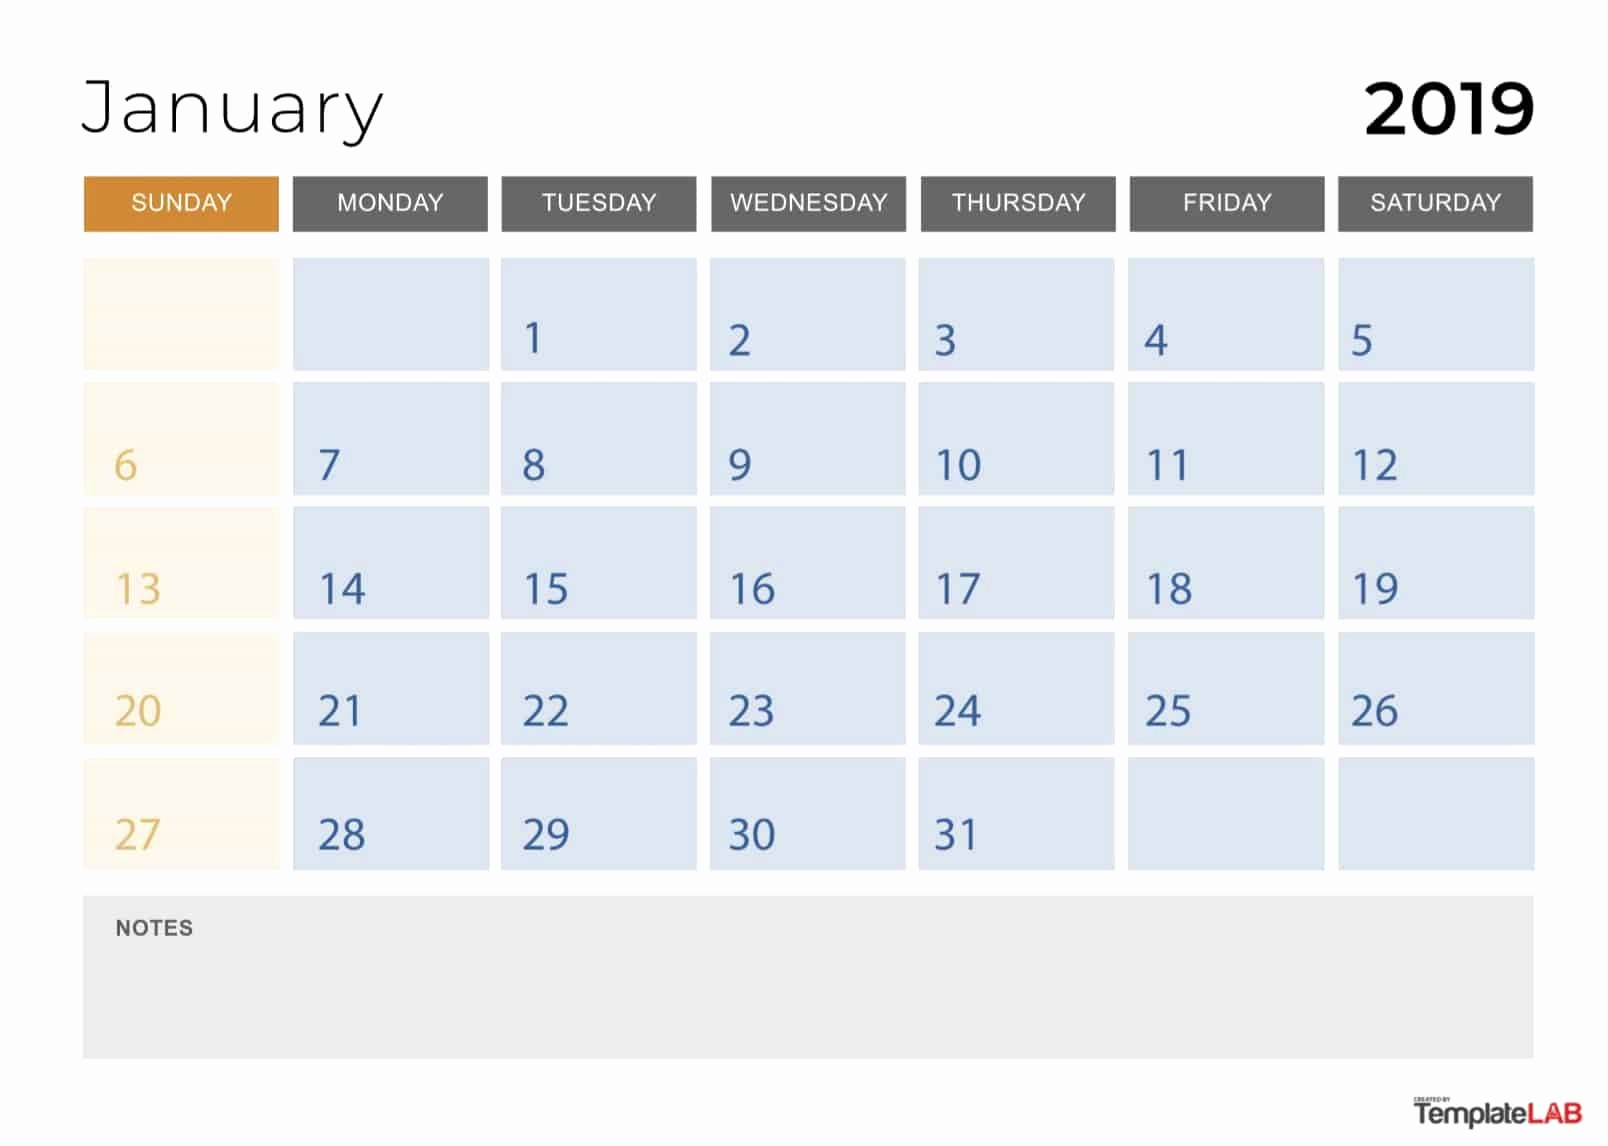 2019 Printable Calendar by Month Fresh 2019 Printable Calendars [monthly with Holidays Yearly